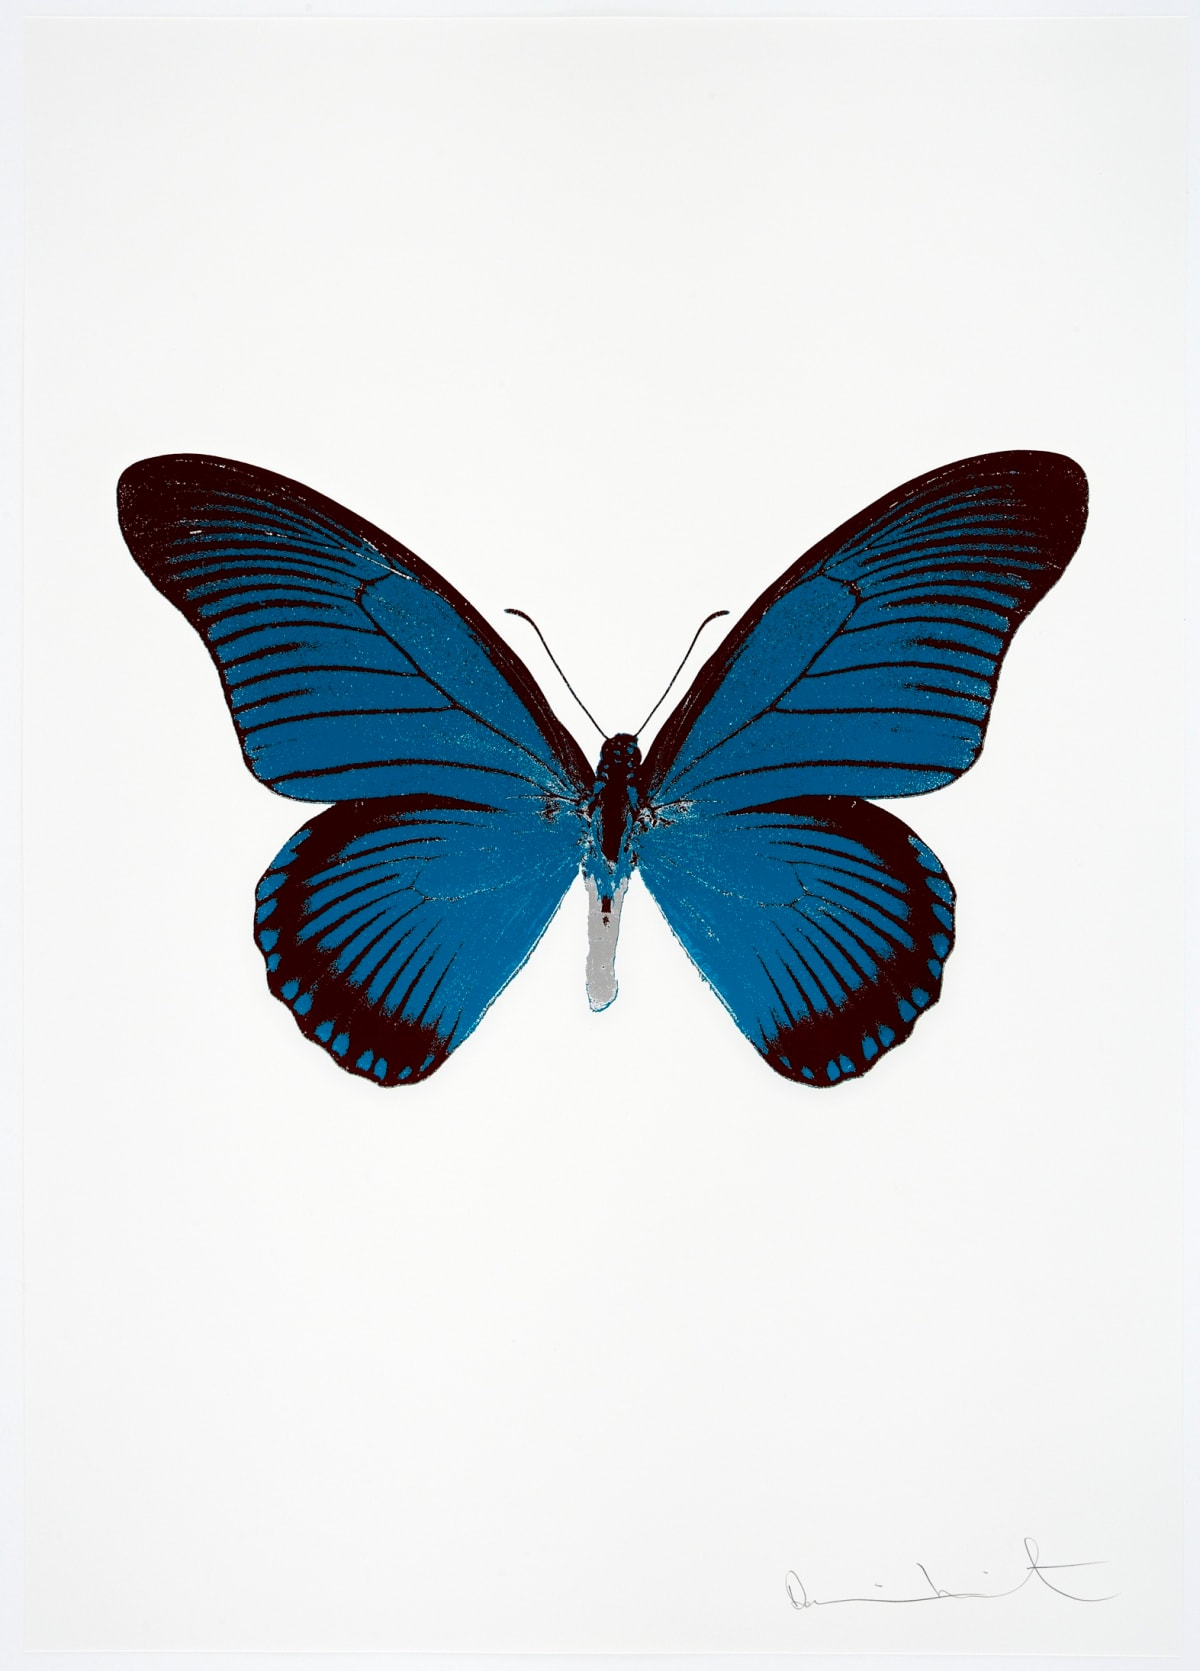 Damien Hirst The Souls IV - Turquoise/Burgundy/Silver Gloss Damien Hirst butterfly foil print for sale Damien Hirst print for sale , 2010 3 colour foil block on 300gsm Arches 88 archival paper. Signed and numbered. Published by Paul Stolper and Other Criteria 72 x 51cm OC8048 / 1418-71 Edition of 15